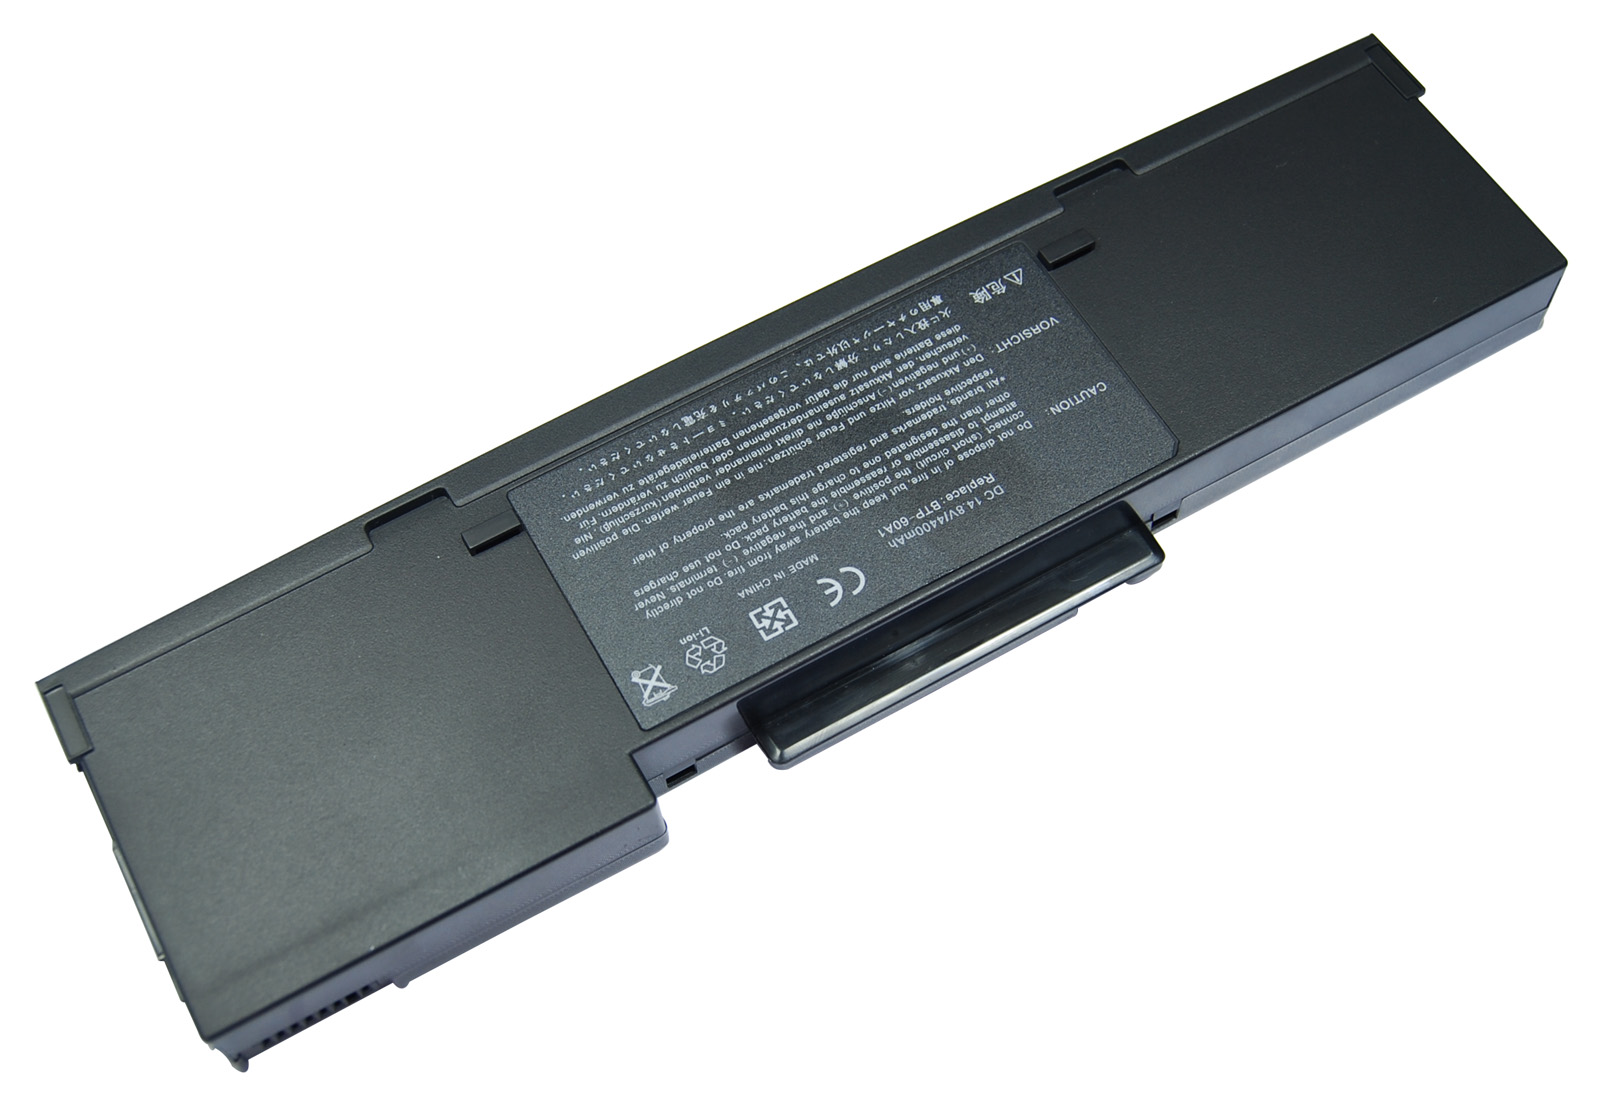 Bateria Portatil ACER Aspire 1360 BT.T3007.001